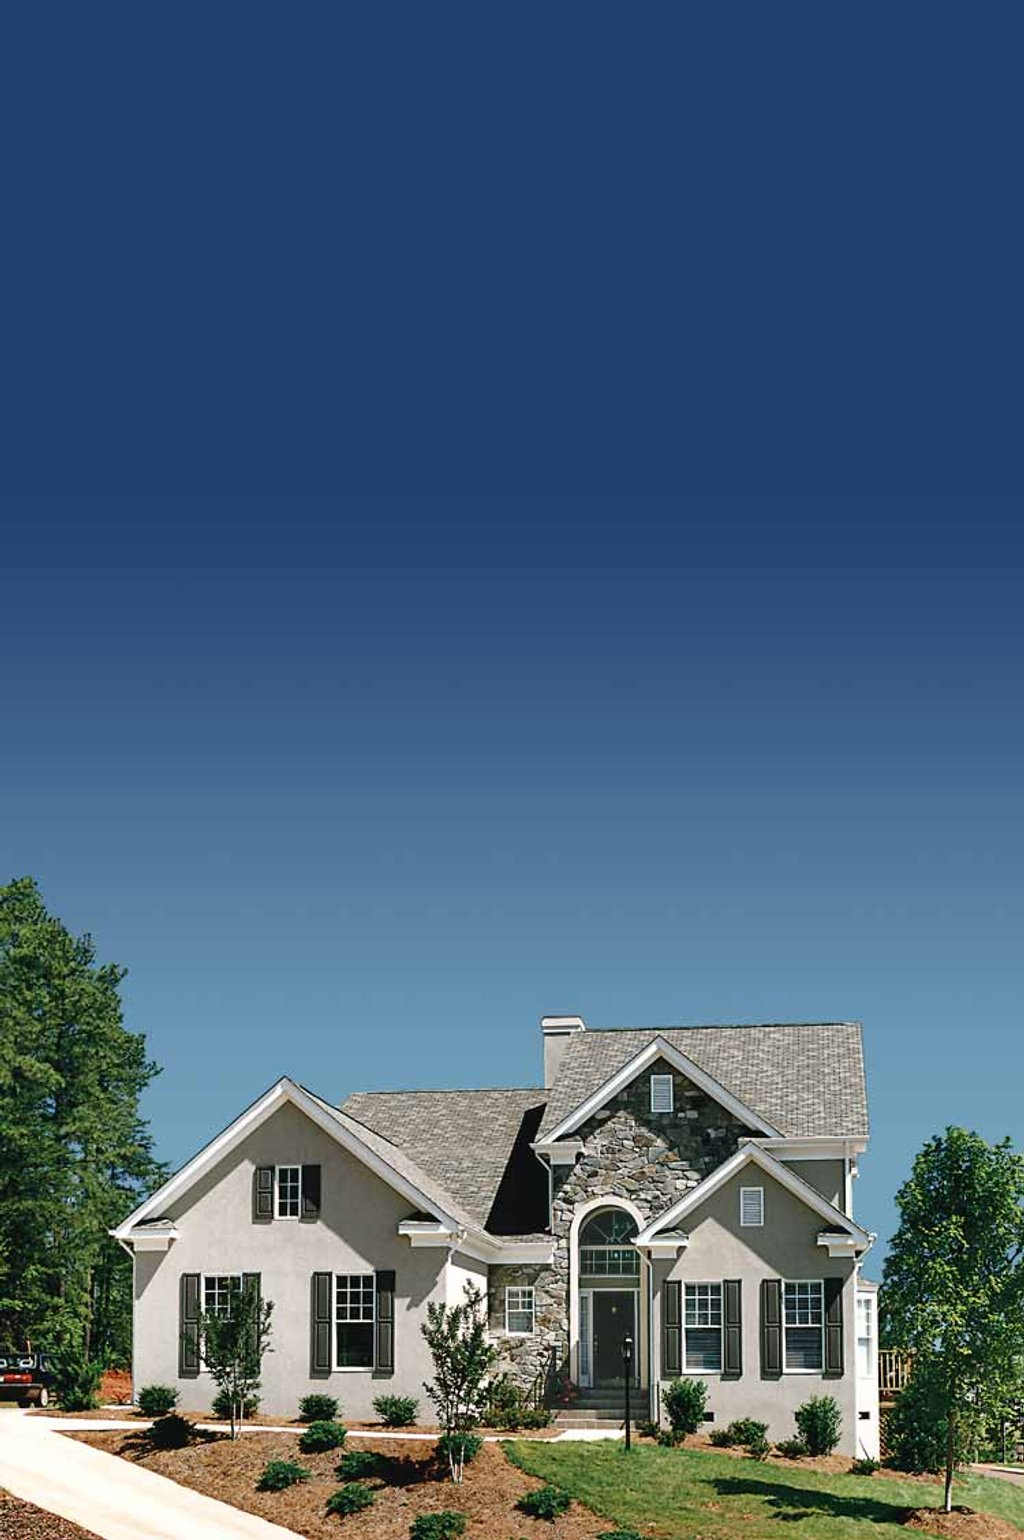 Traditional Exterior Front Elevation Plan 453 388